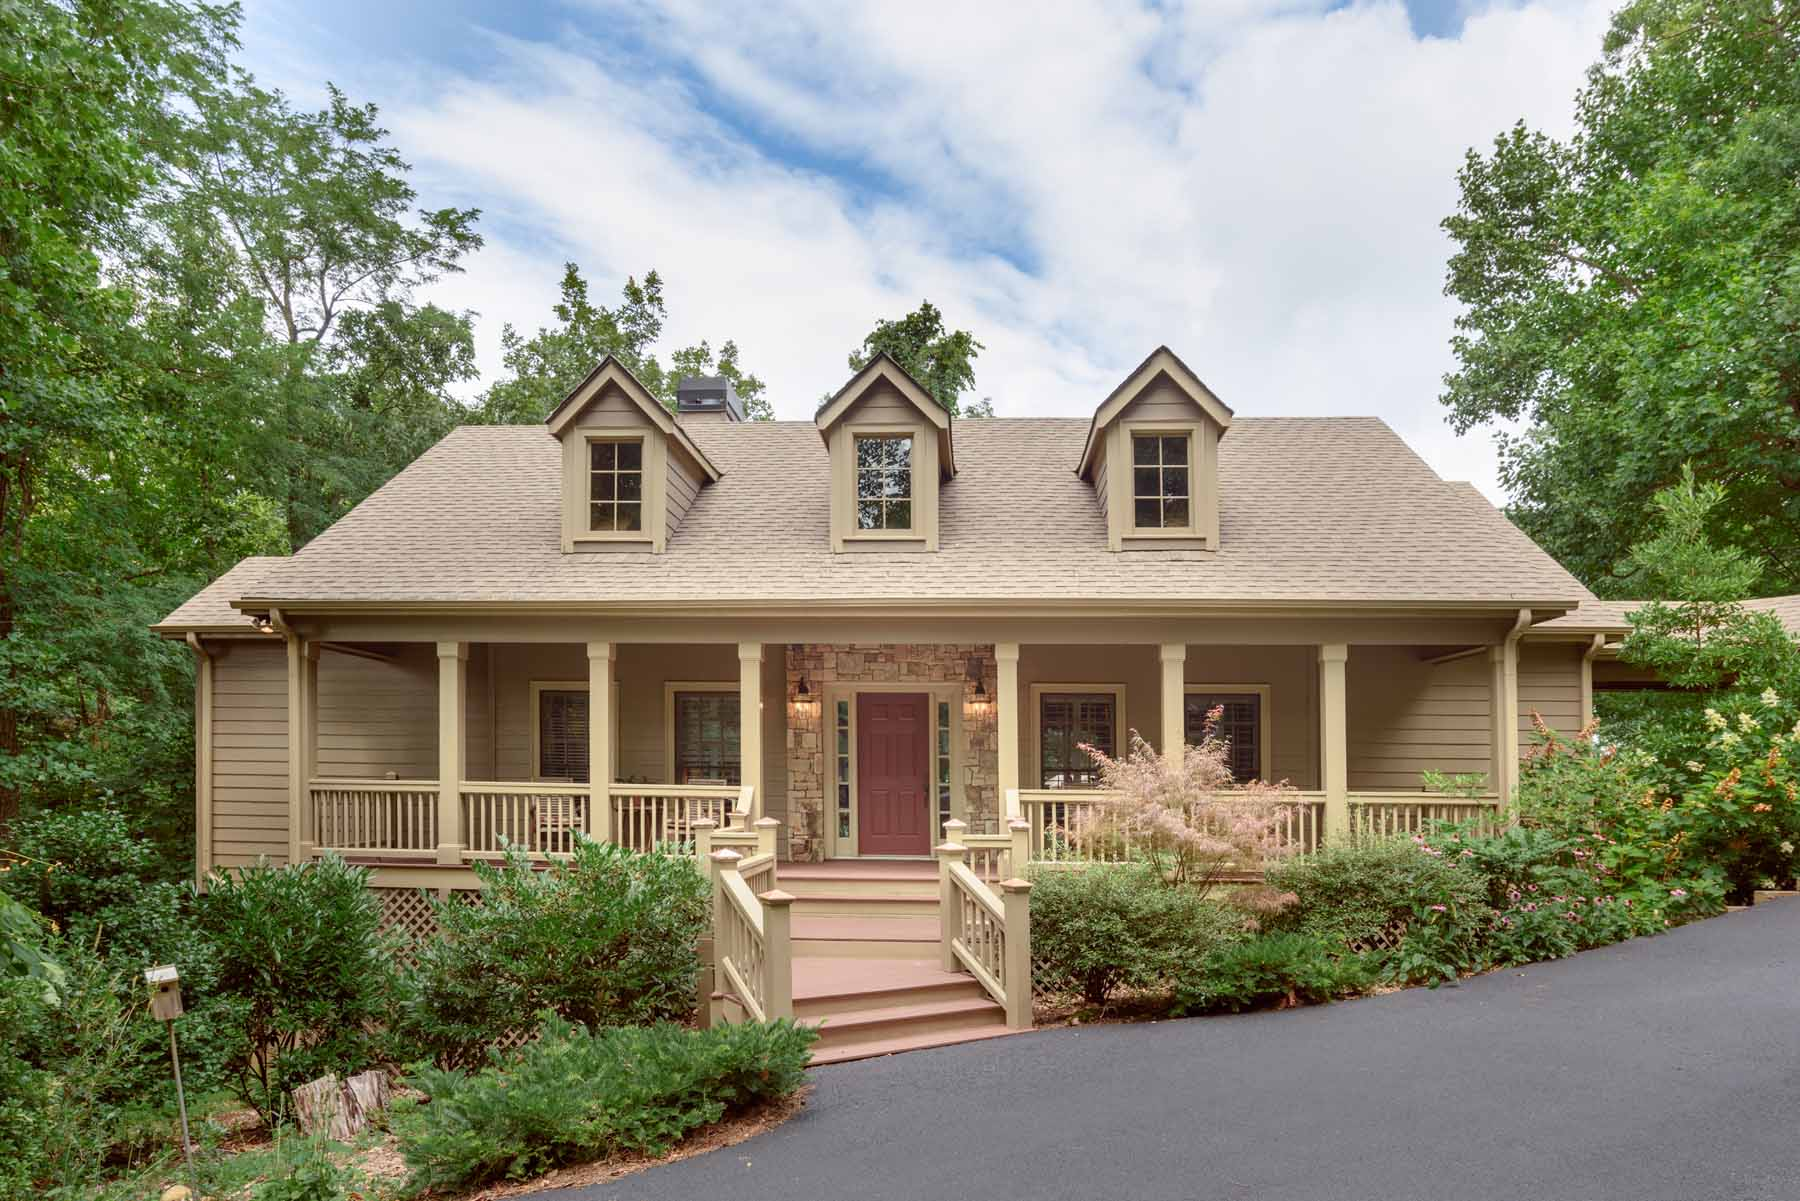 Single Family Home for Sale at Mountain Home One Hour from Atlanta Shows Like Model Shows Like a Model 1255 Deer Run Ridge Big Canoe, Georgia, 30143 United States